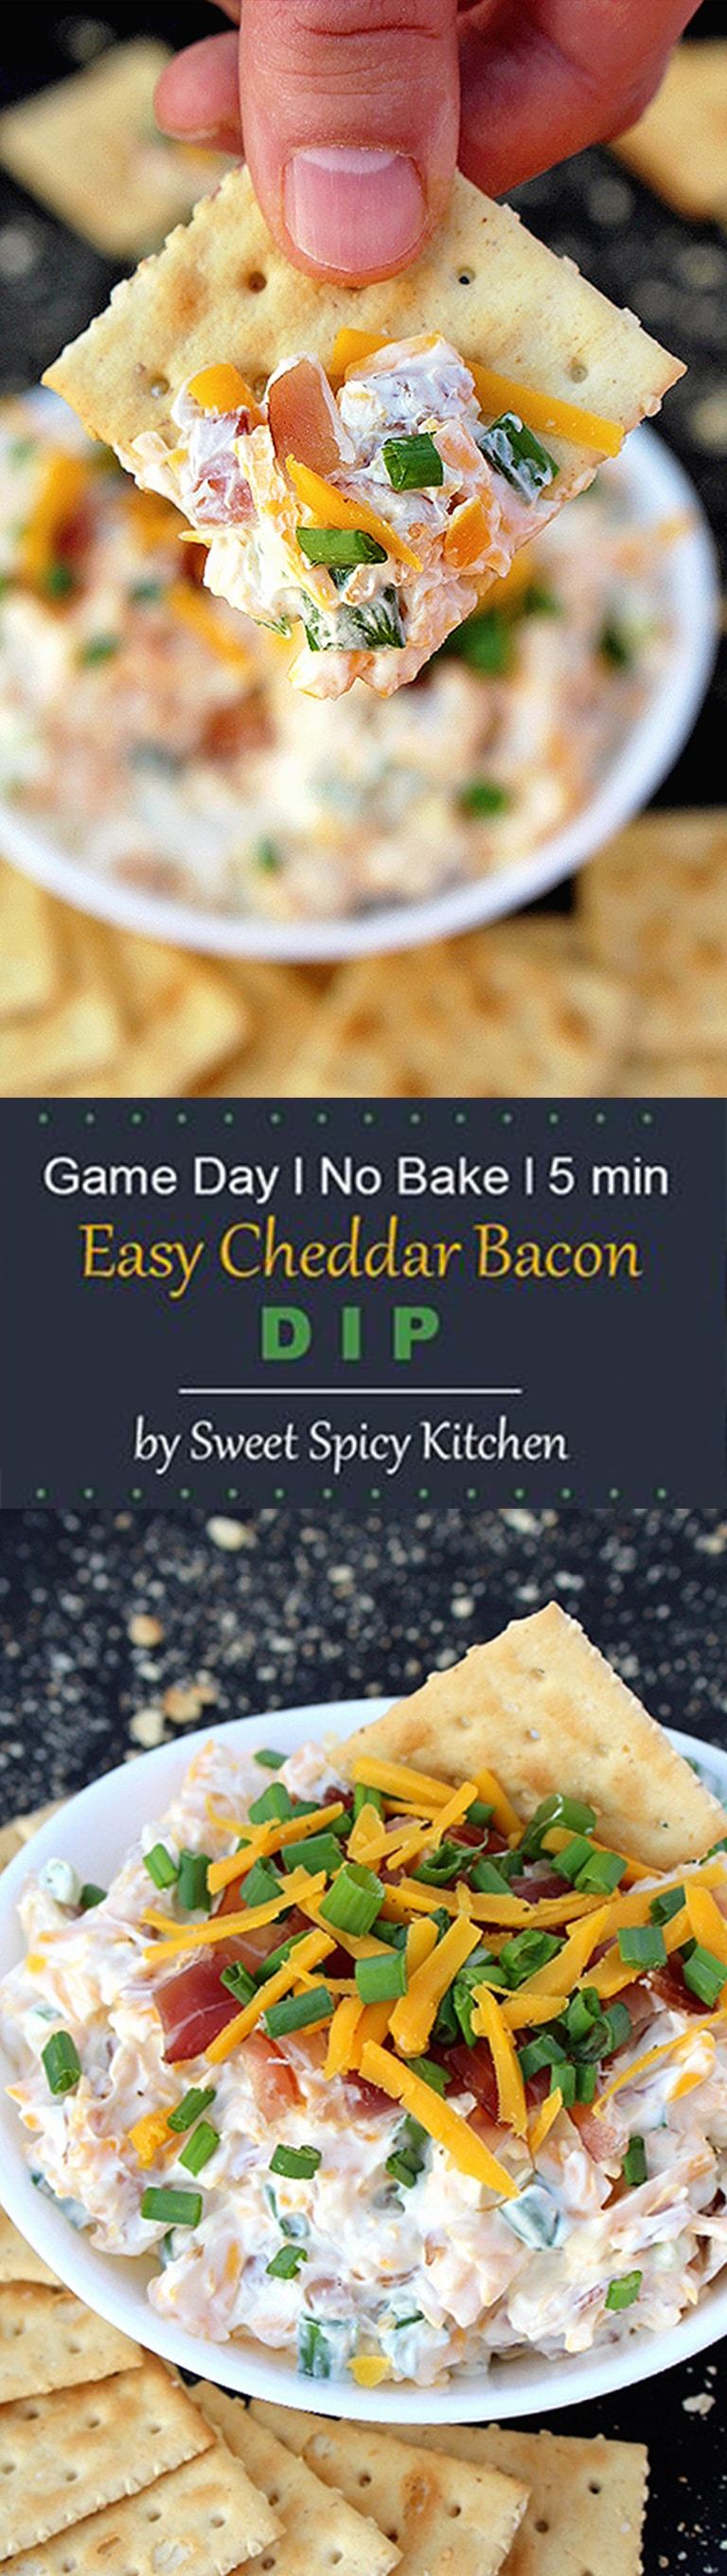 Our favorite appetizer for the Game Day is a dip that takes only 5 minutes to prepare – No Bake Cheddar Bacon Dip